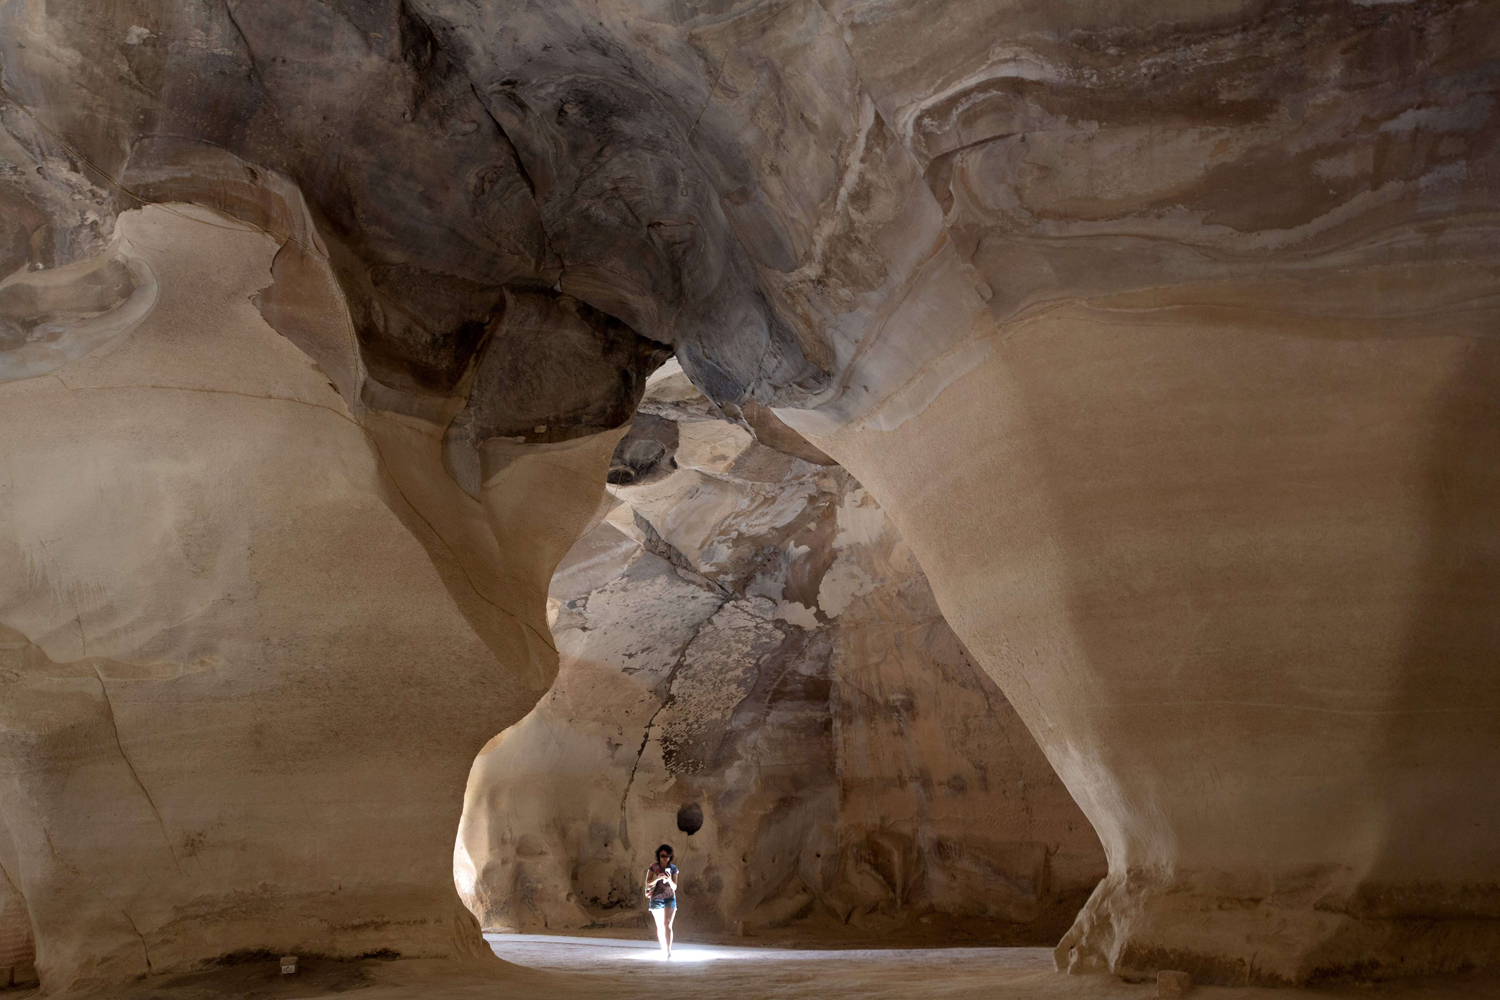 Jun. 24 2014. Tourists visit the Bell caves locate at the Beit Guvrin-Maresha National Park in central Israel.